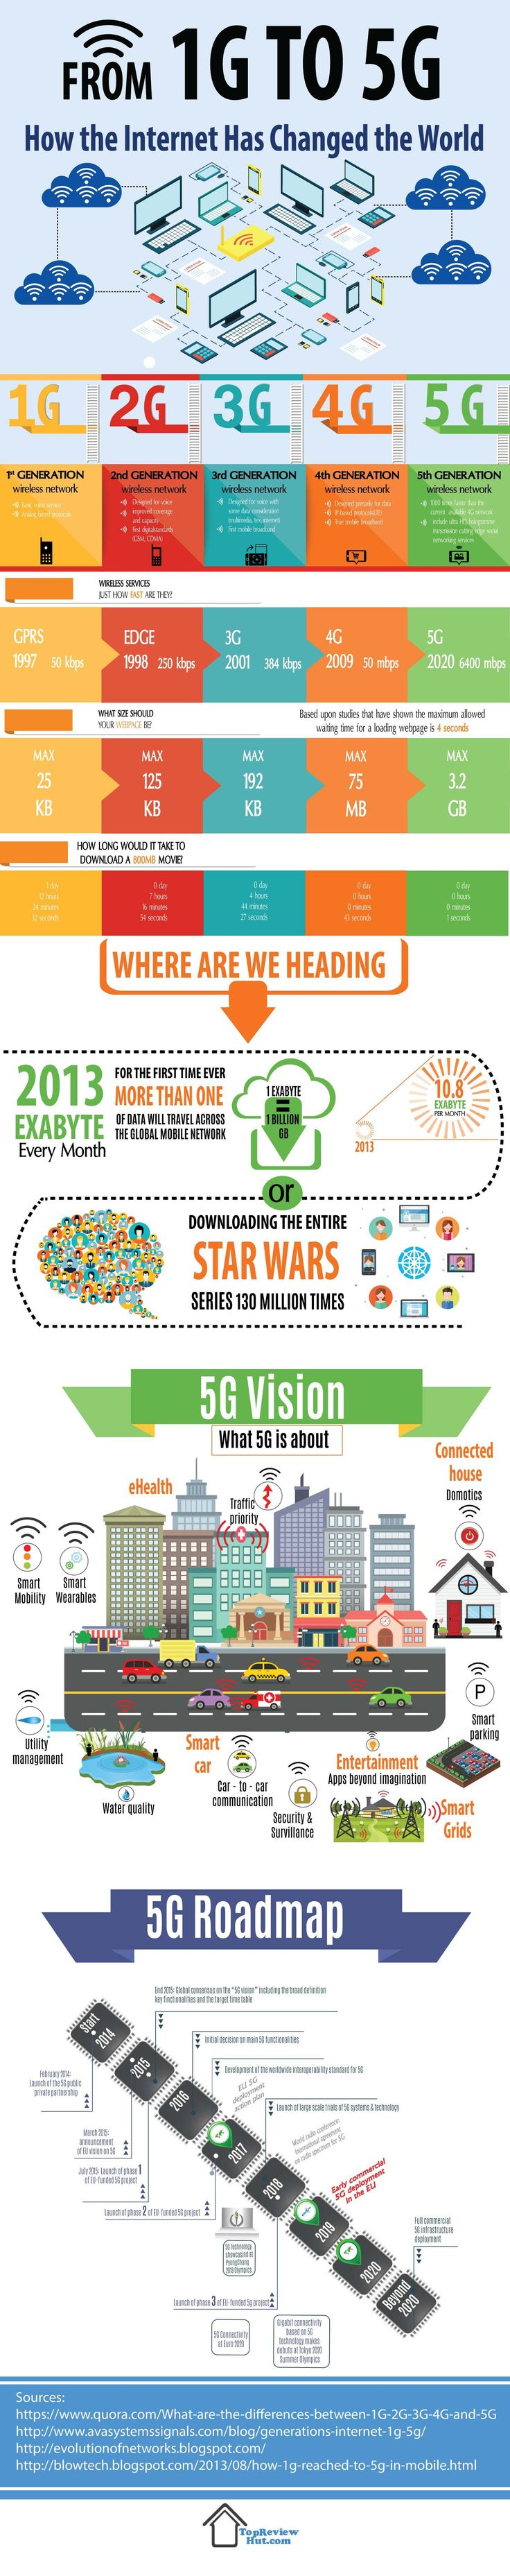 From 1G To 5G: How The Internet Has Changed The World